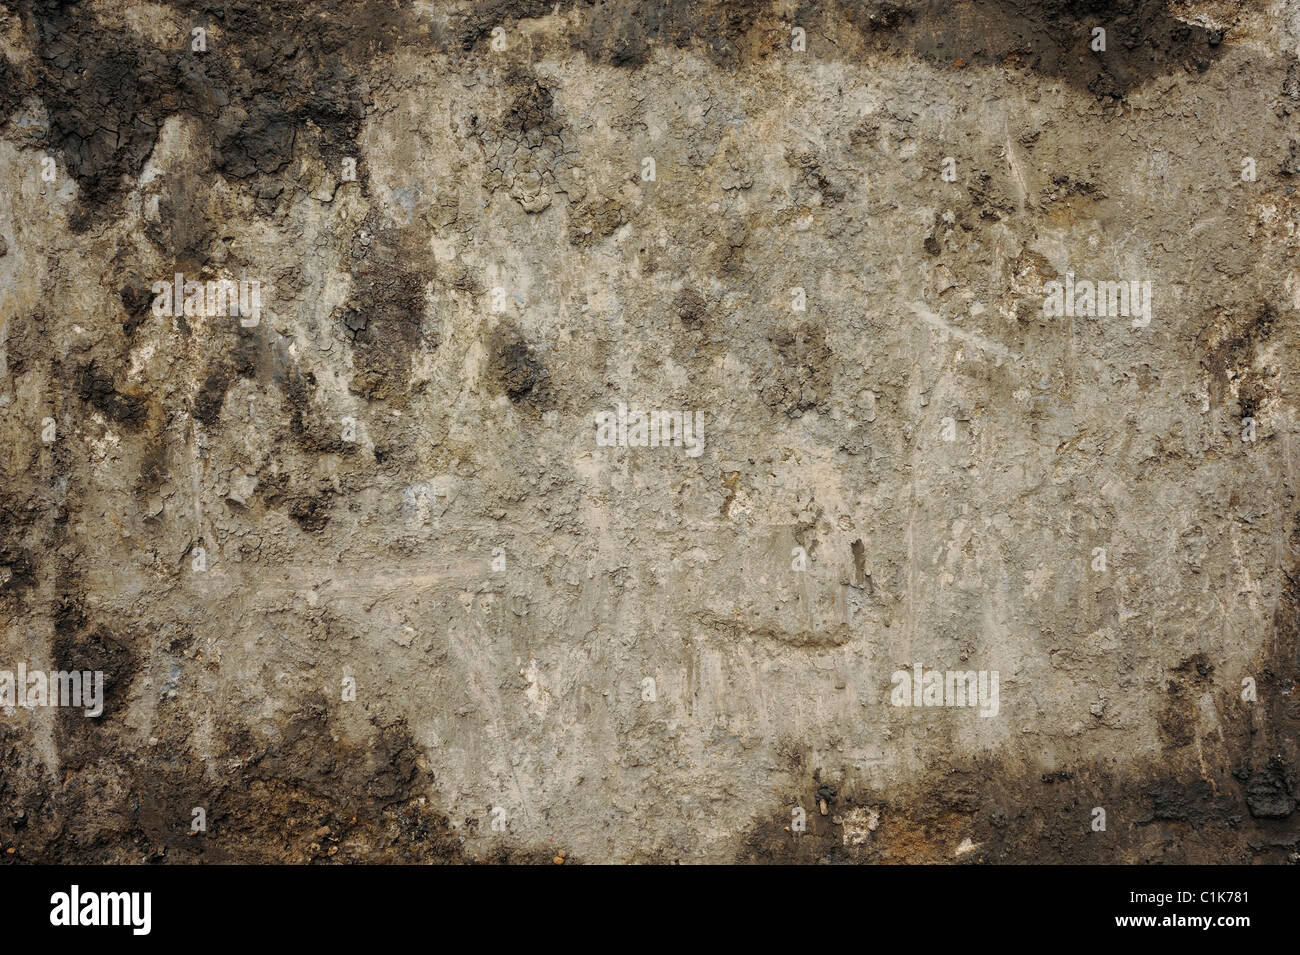 Dirty mud and concrete abstract texture - Stock Image